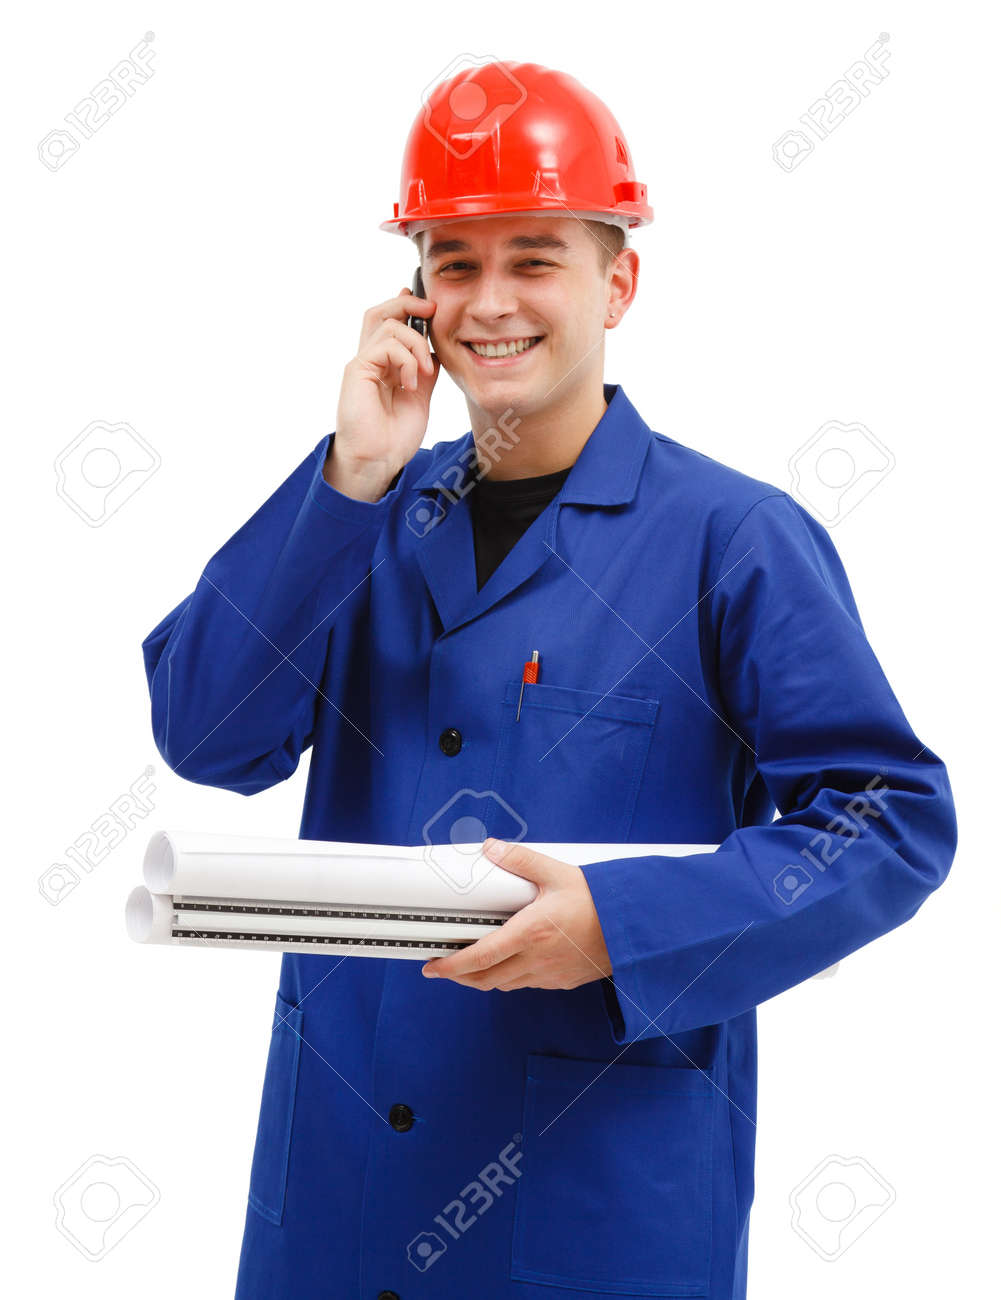 Happy engineer with red helmet holding layout plans talking on the phone Stock Photo - 10658837